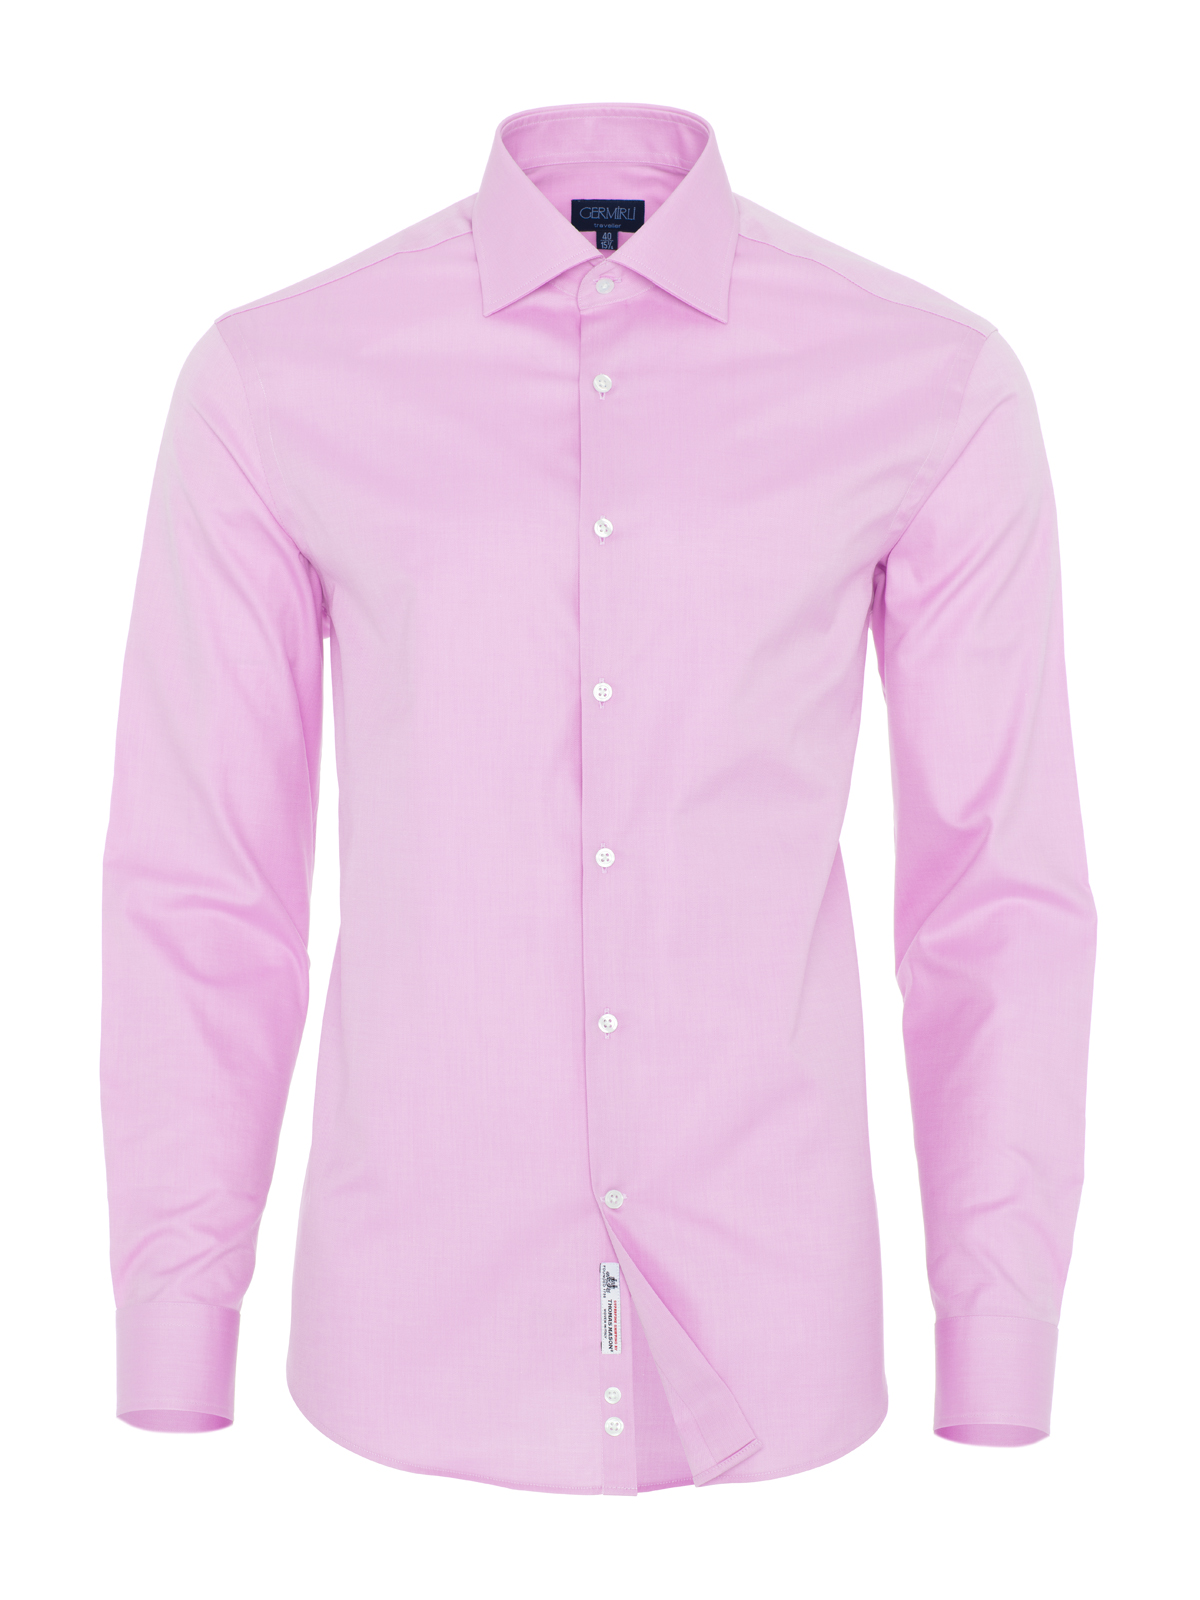 Germirli Non Iron Pink Twill Semi Spread Tailor Fit Journey Shirt